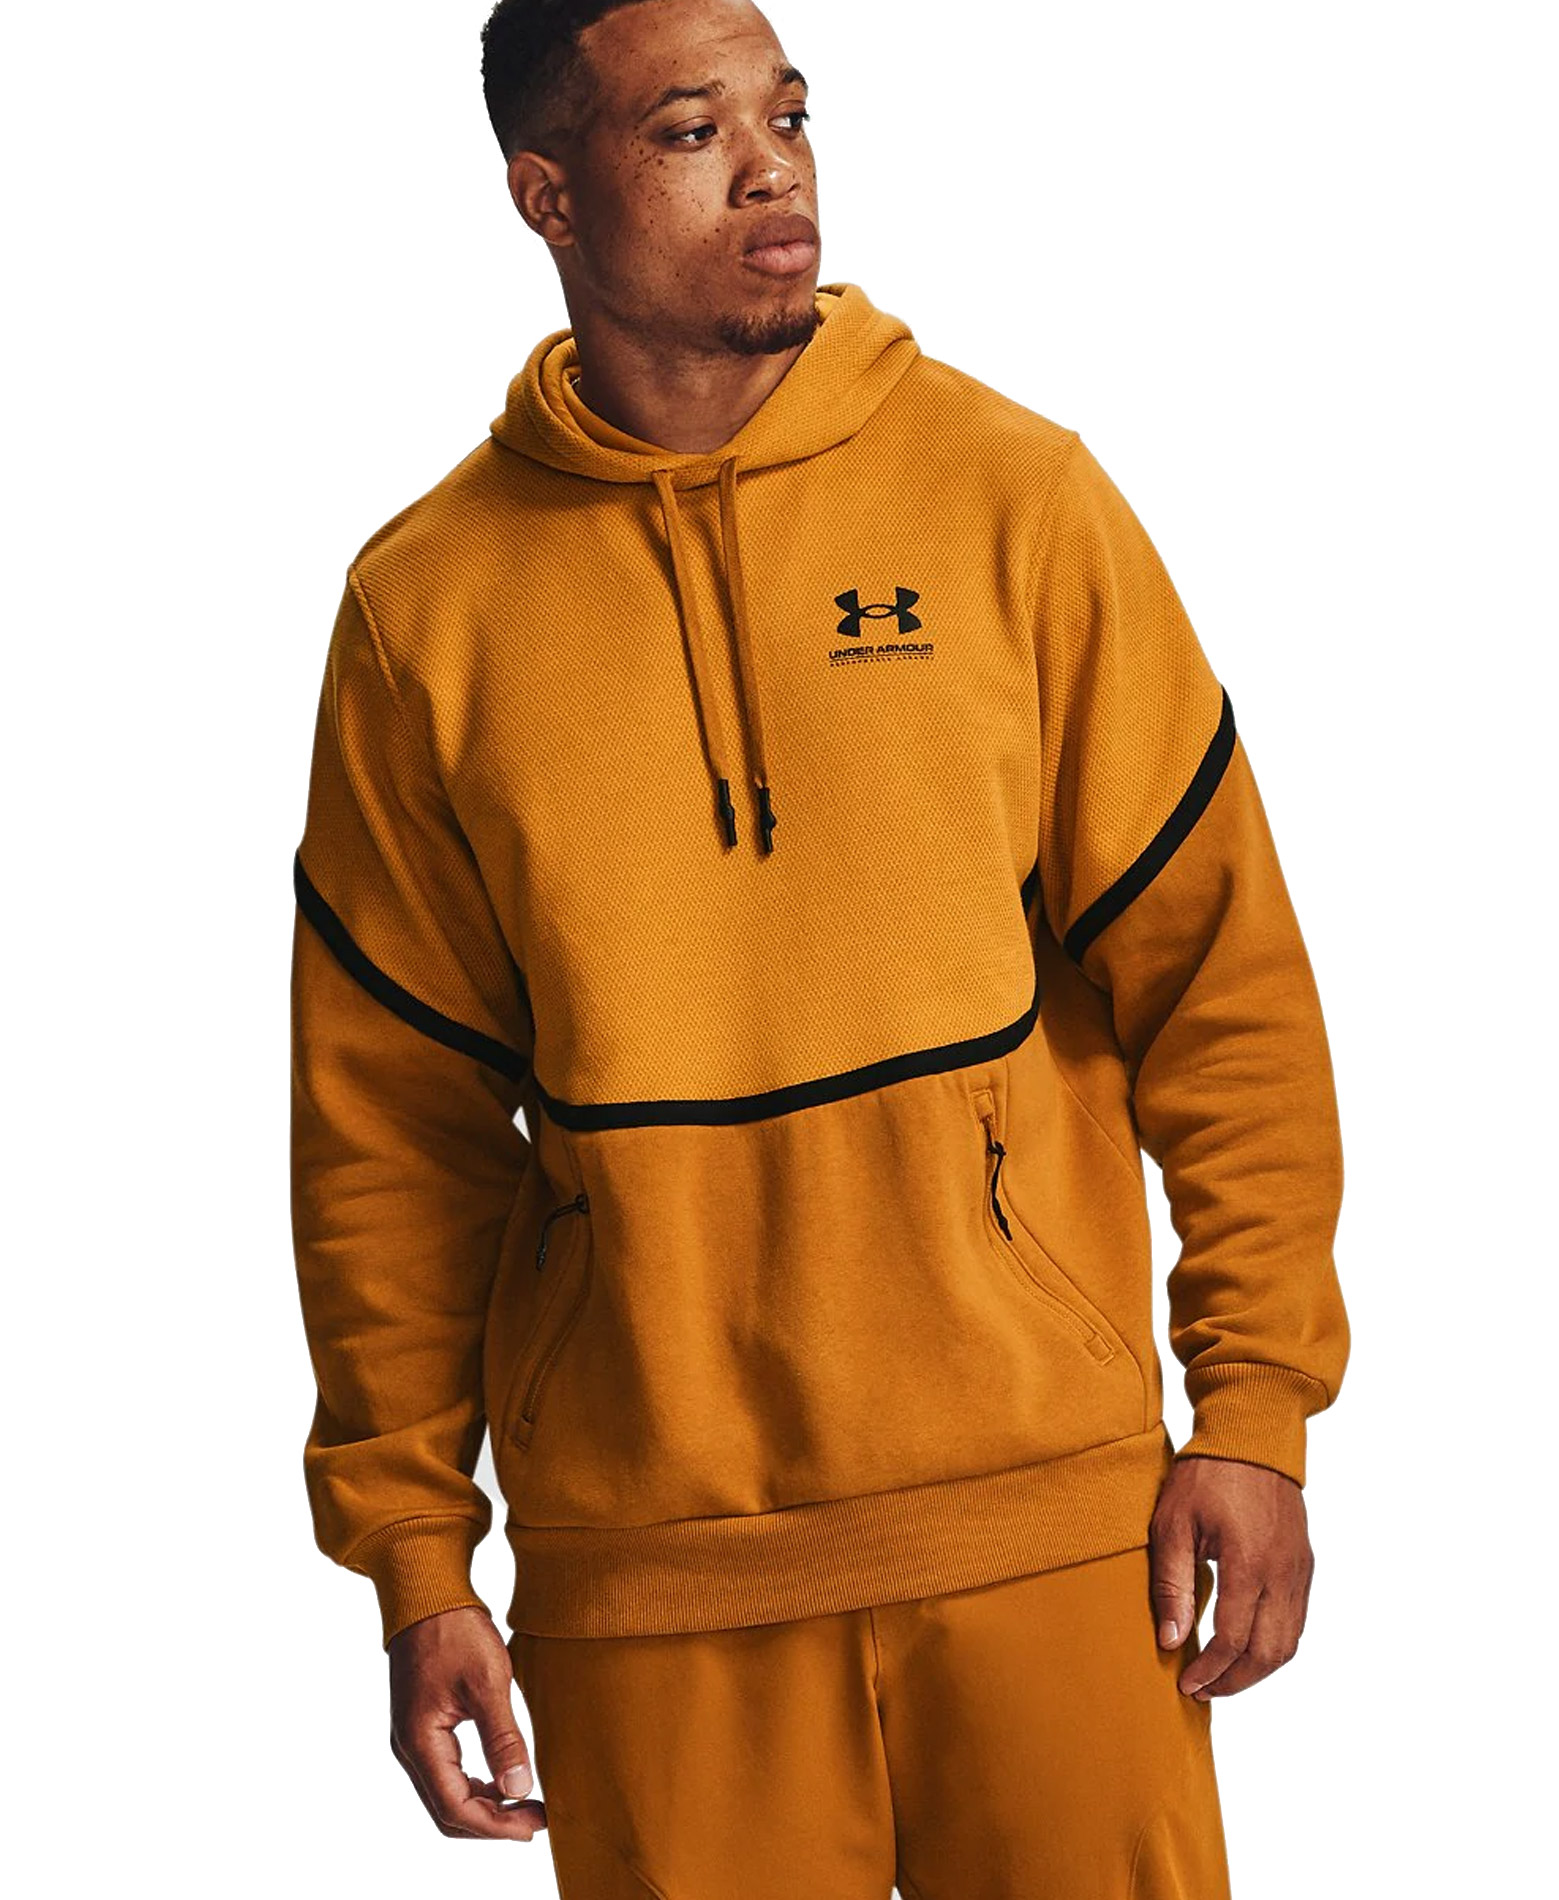 UNDER ARMOUR RIVAL FLEECE AMP HD 1357090-711 Κίτρινο